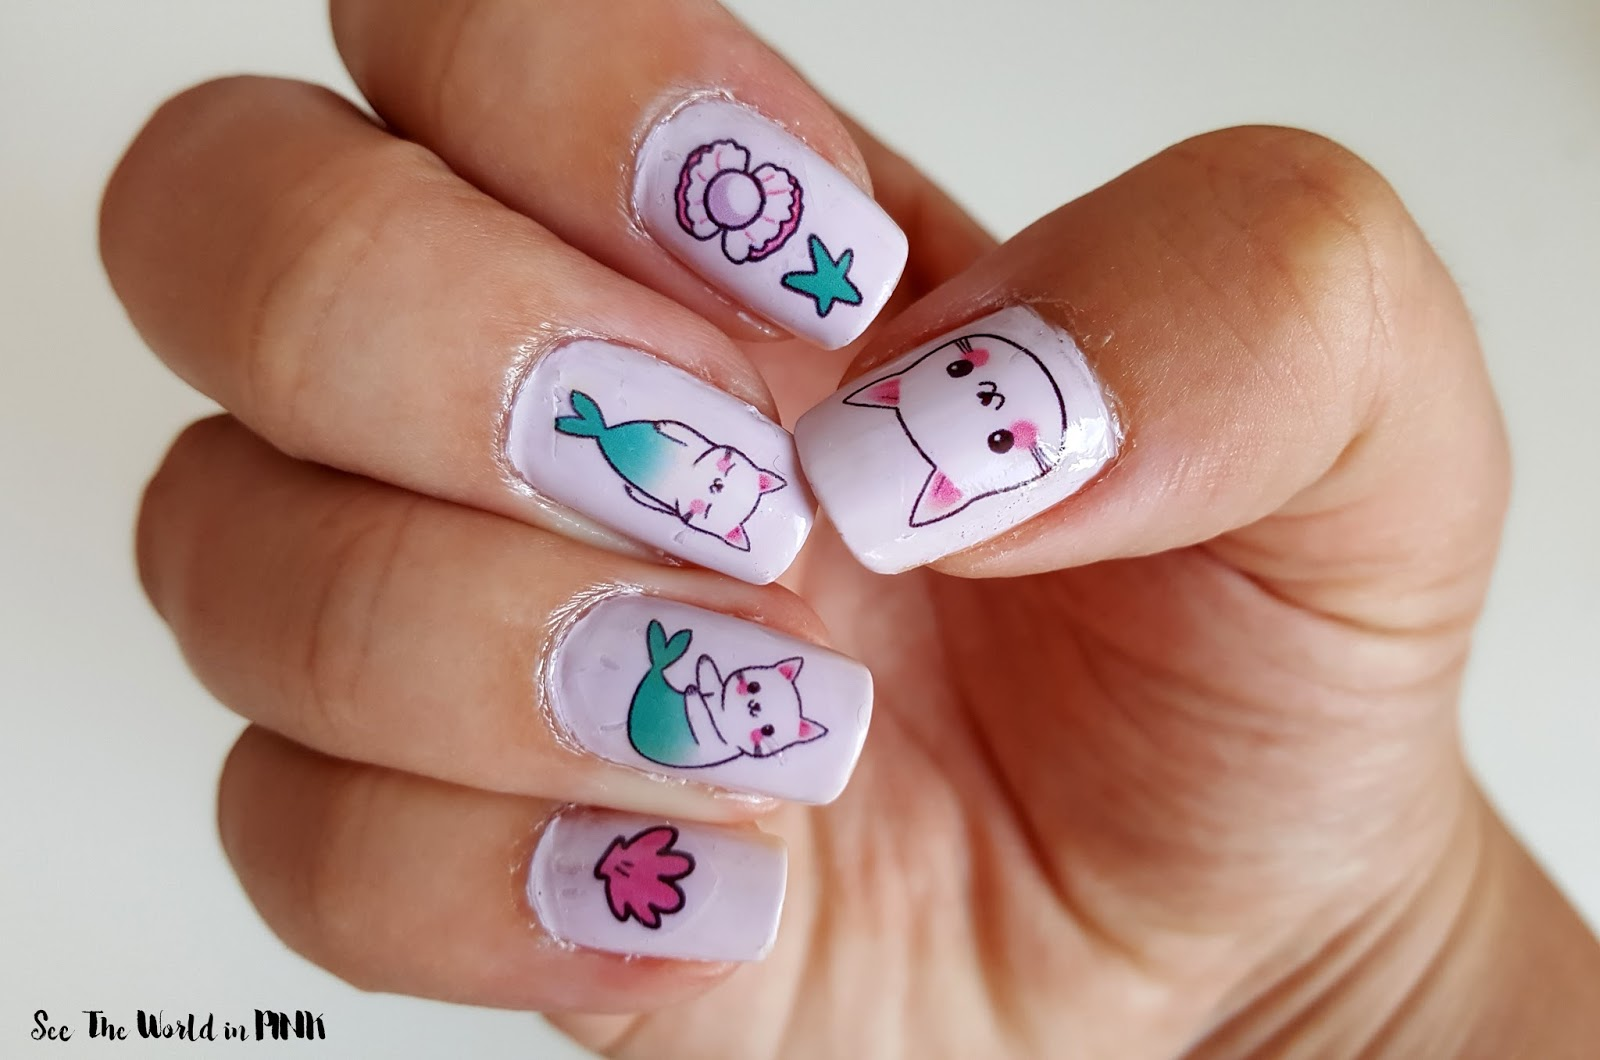 Manicure Tuesday - Purrmaid & Merkittens Nail Decals!